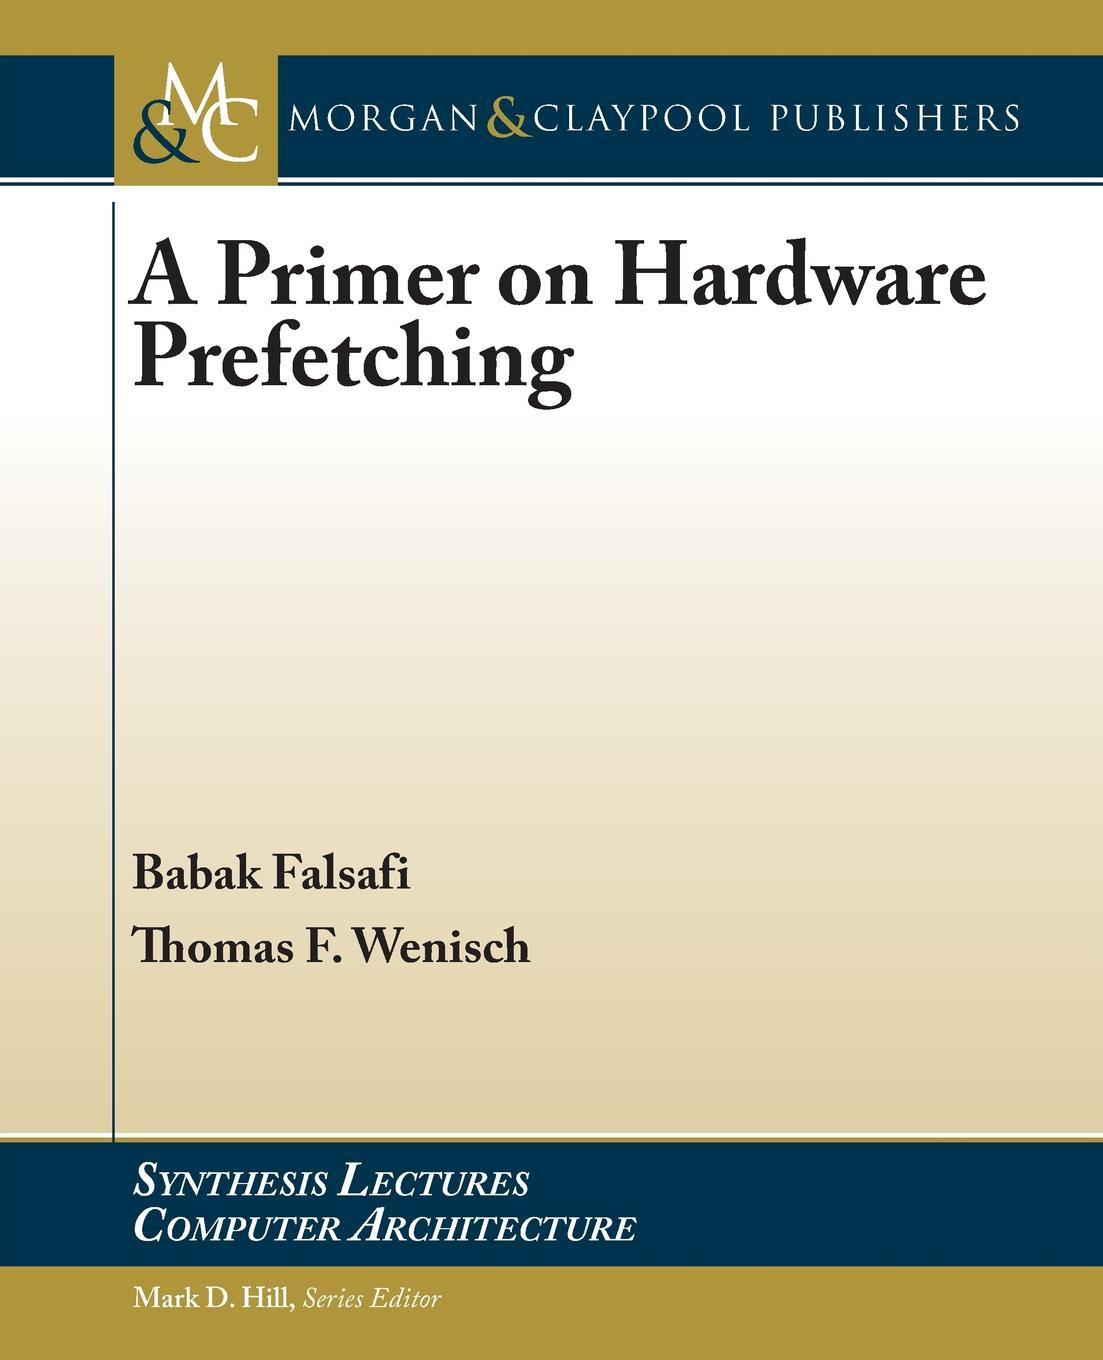 Babak Falsafi, Thomas F. Wenisch A Primer on Hardware Prefetching the memory keeper s daughter